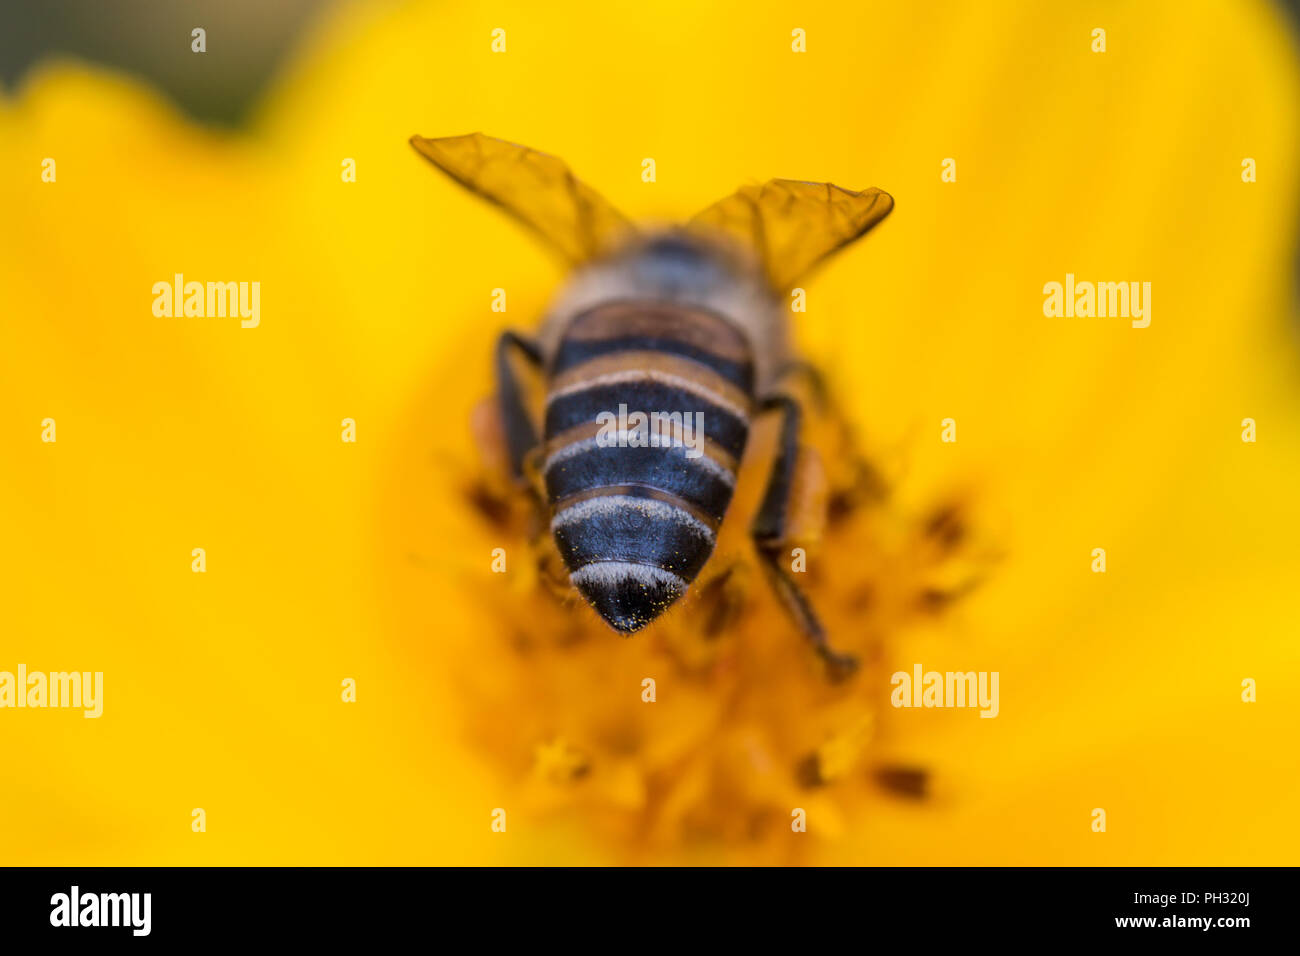 Beehind, the back of a honey bee pollinating a yellow cosmos flower - Stock Image